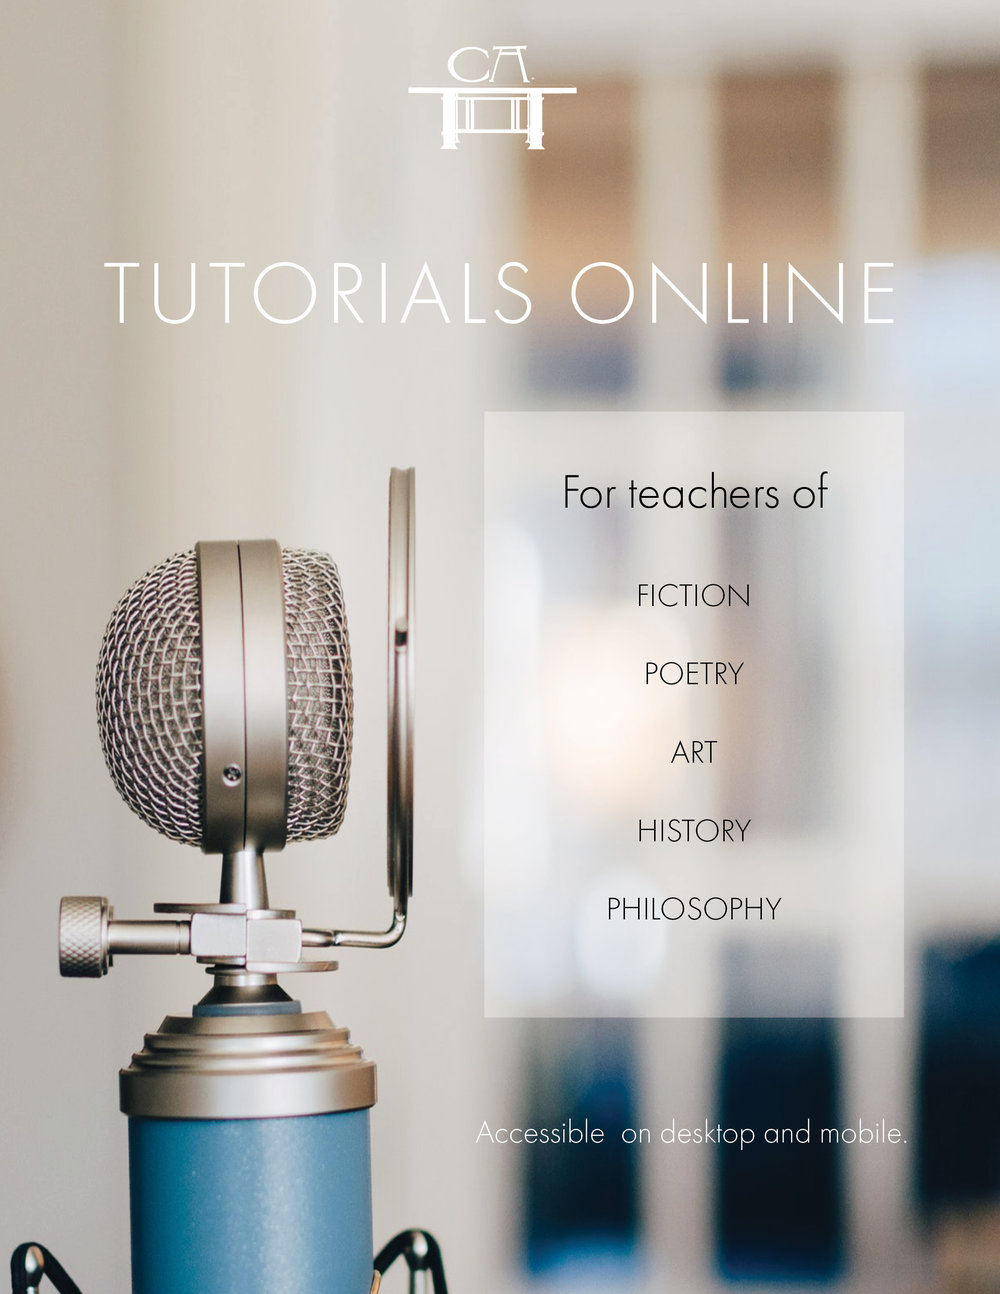 Tutorials - Boost your team's expertise on classic works of literature and art with this bank of recorded Tutorials on fiction, poetry, art, history, and philosophy.INCLUDED